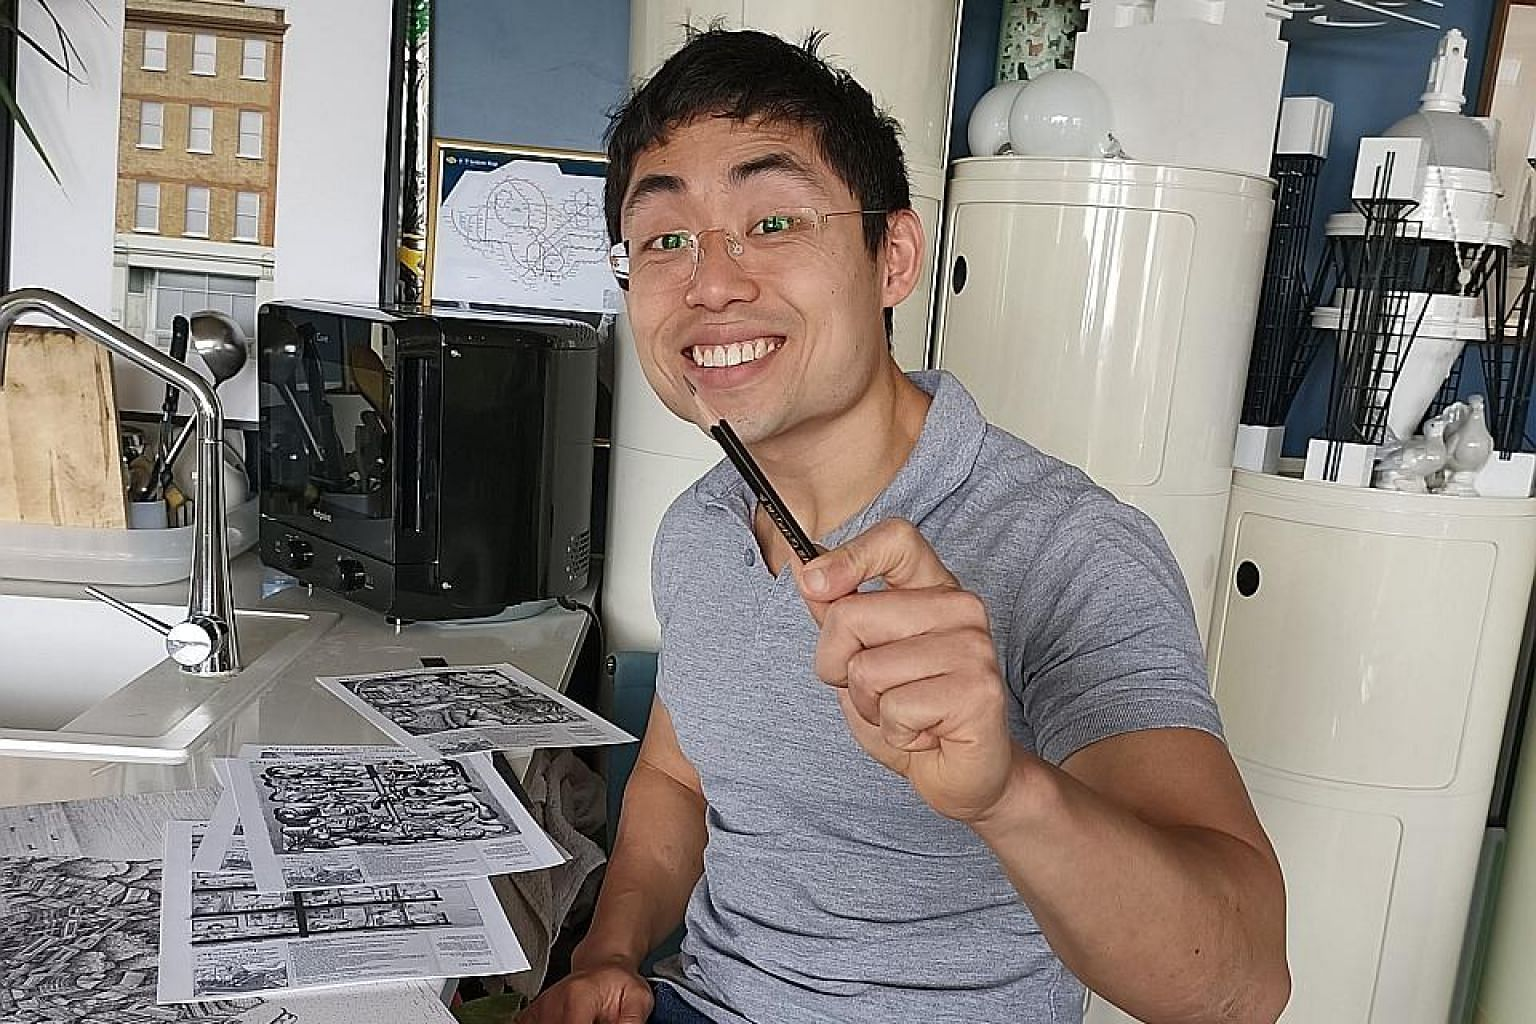 Mr Cliff Tan, who is based in London, shaded the colouring contest illustrations with only a black lead pencil.